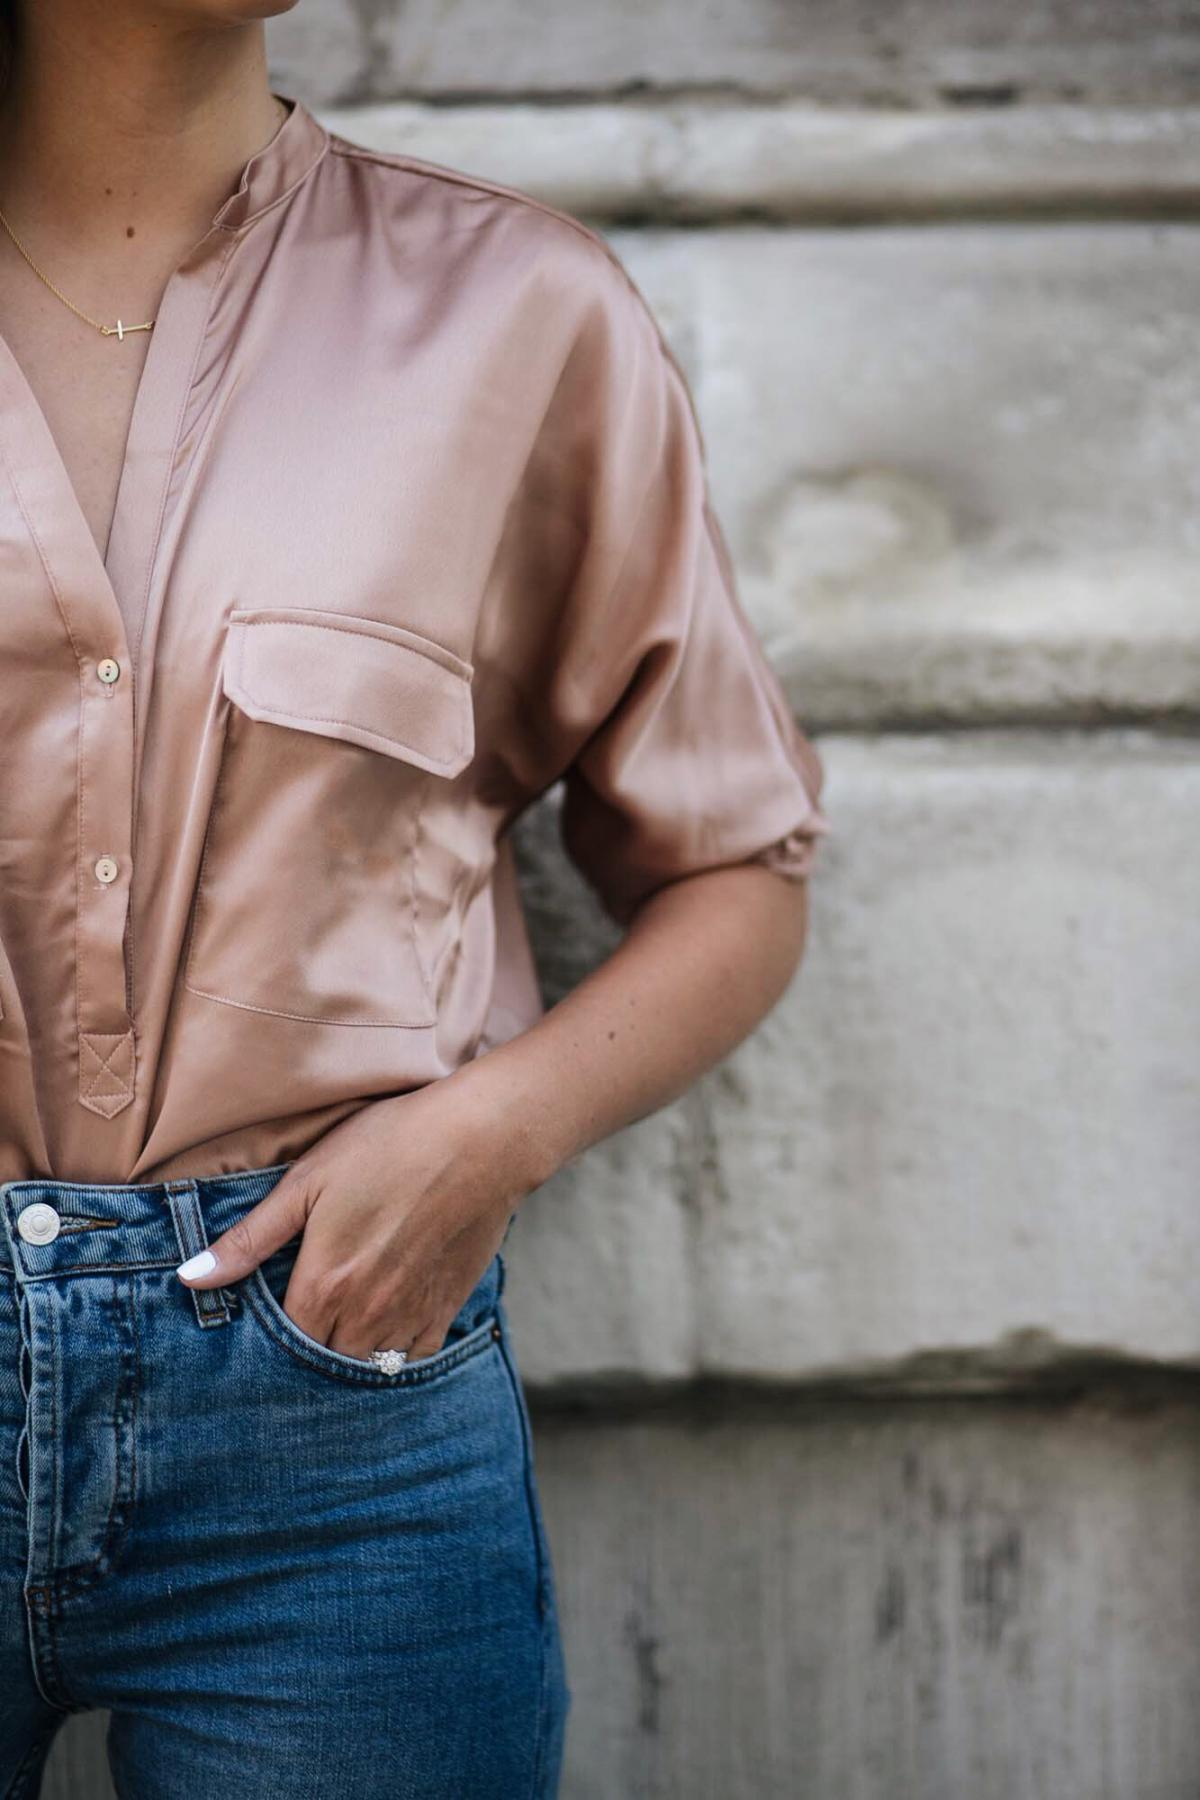 satin shirt, gold cross necklace, light wash denim jeans, white nails, date night outfit